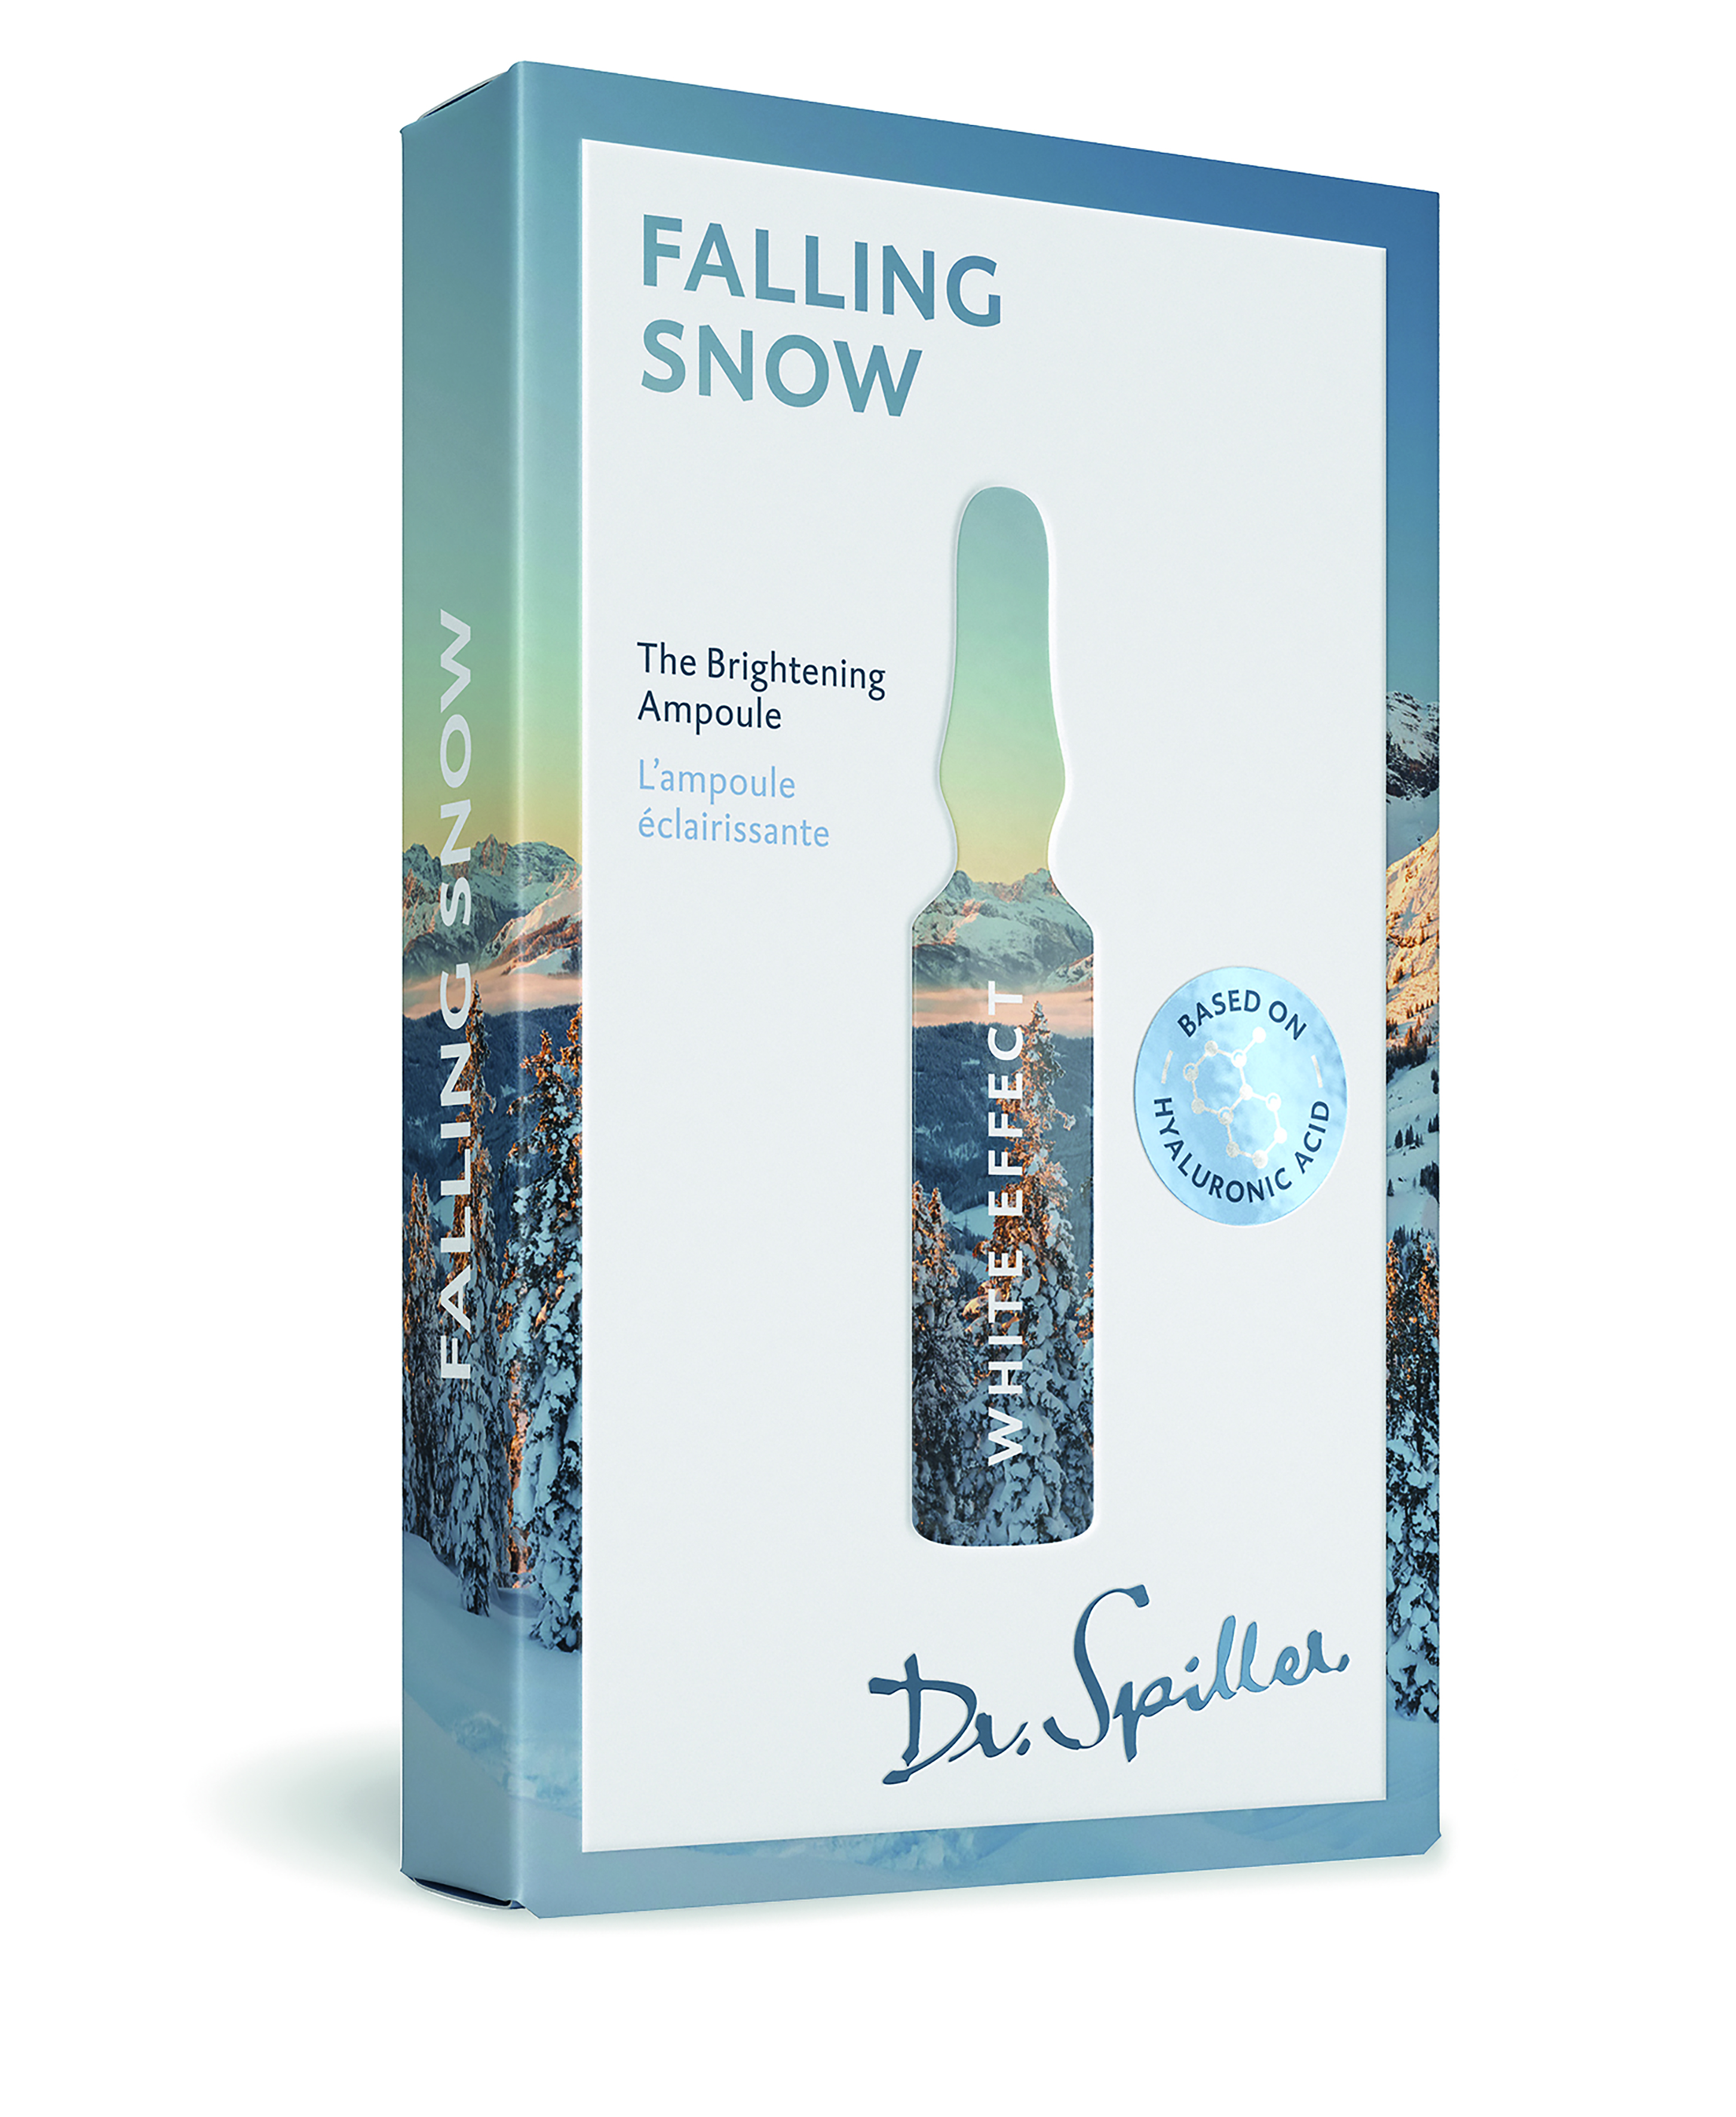 White Effect - Falling Snow - The Brightening Ampoule